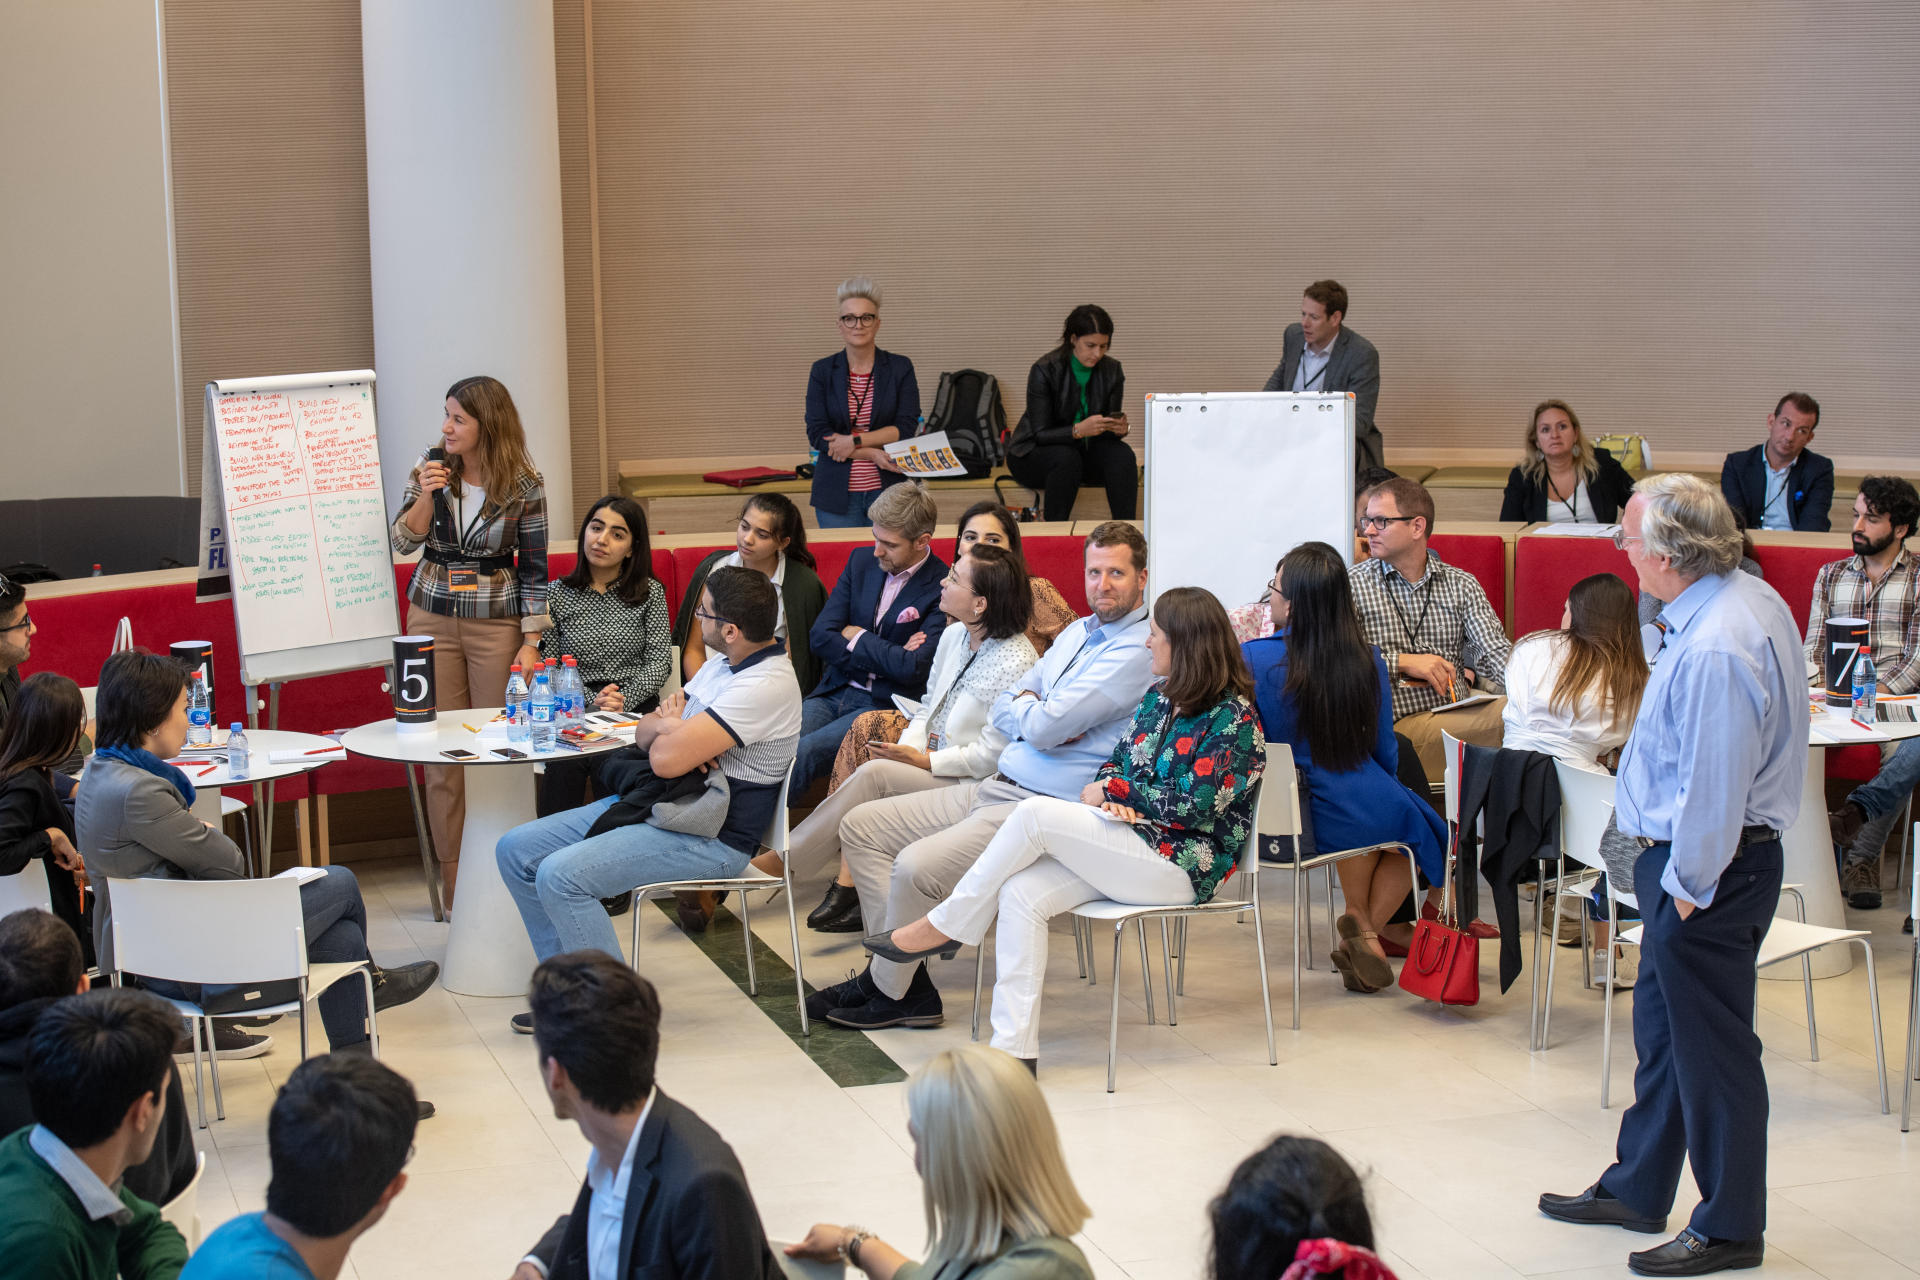 PwC Partners from Central & Eastern Europe hold joint session with ADA University students in Baku